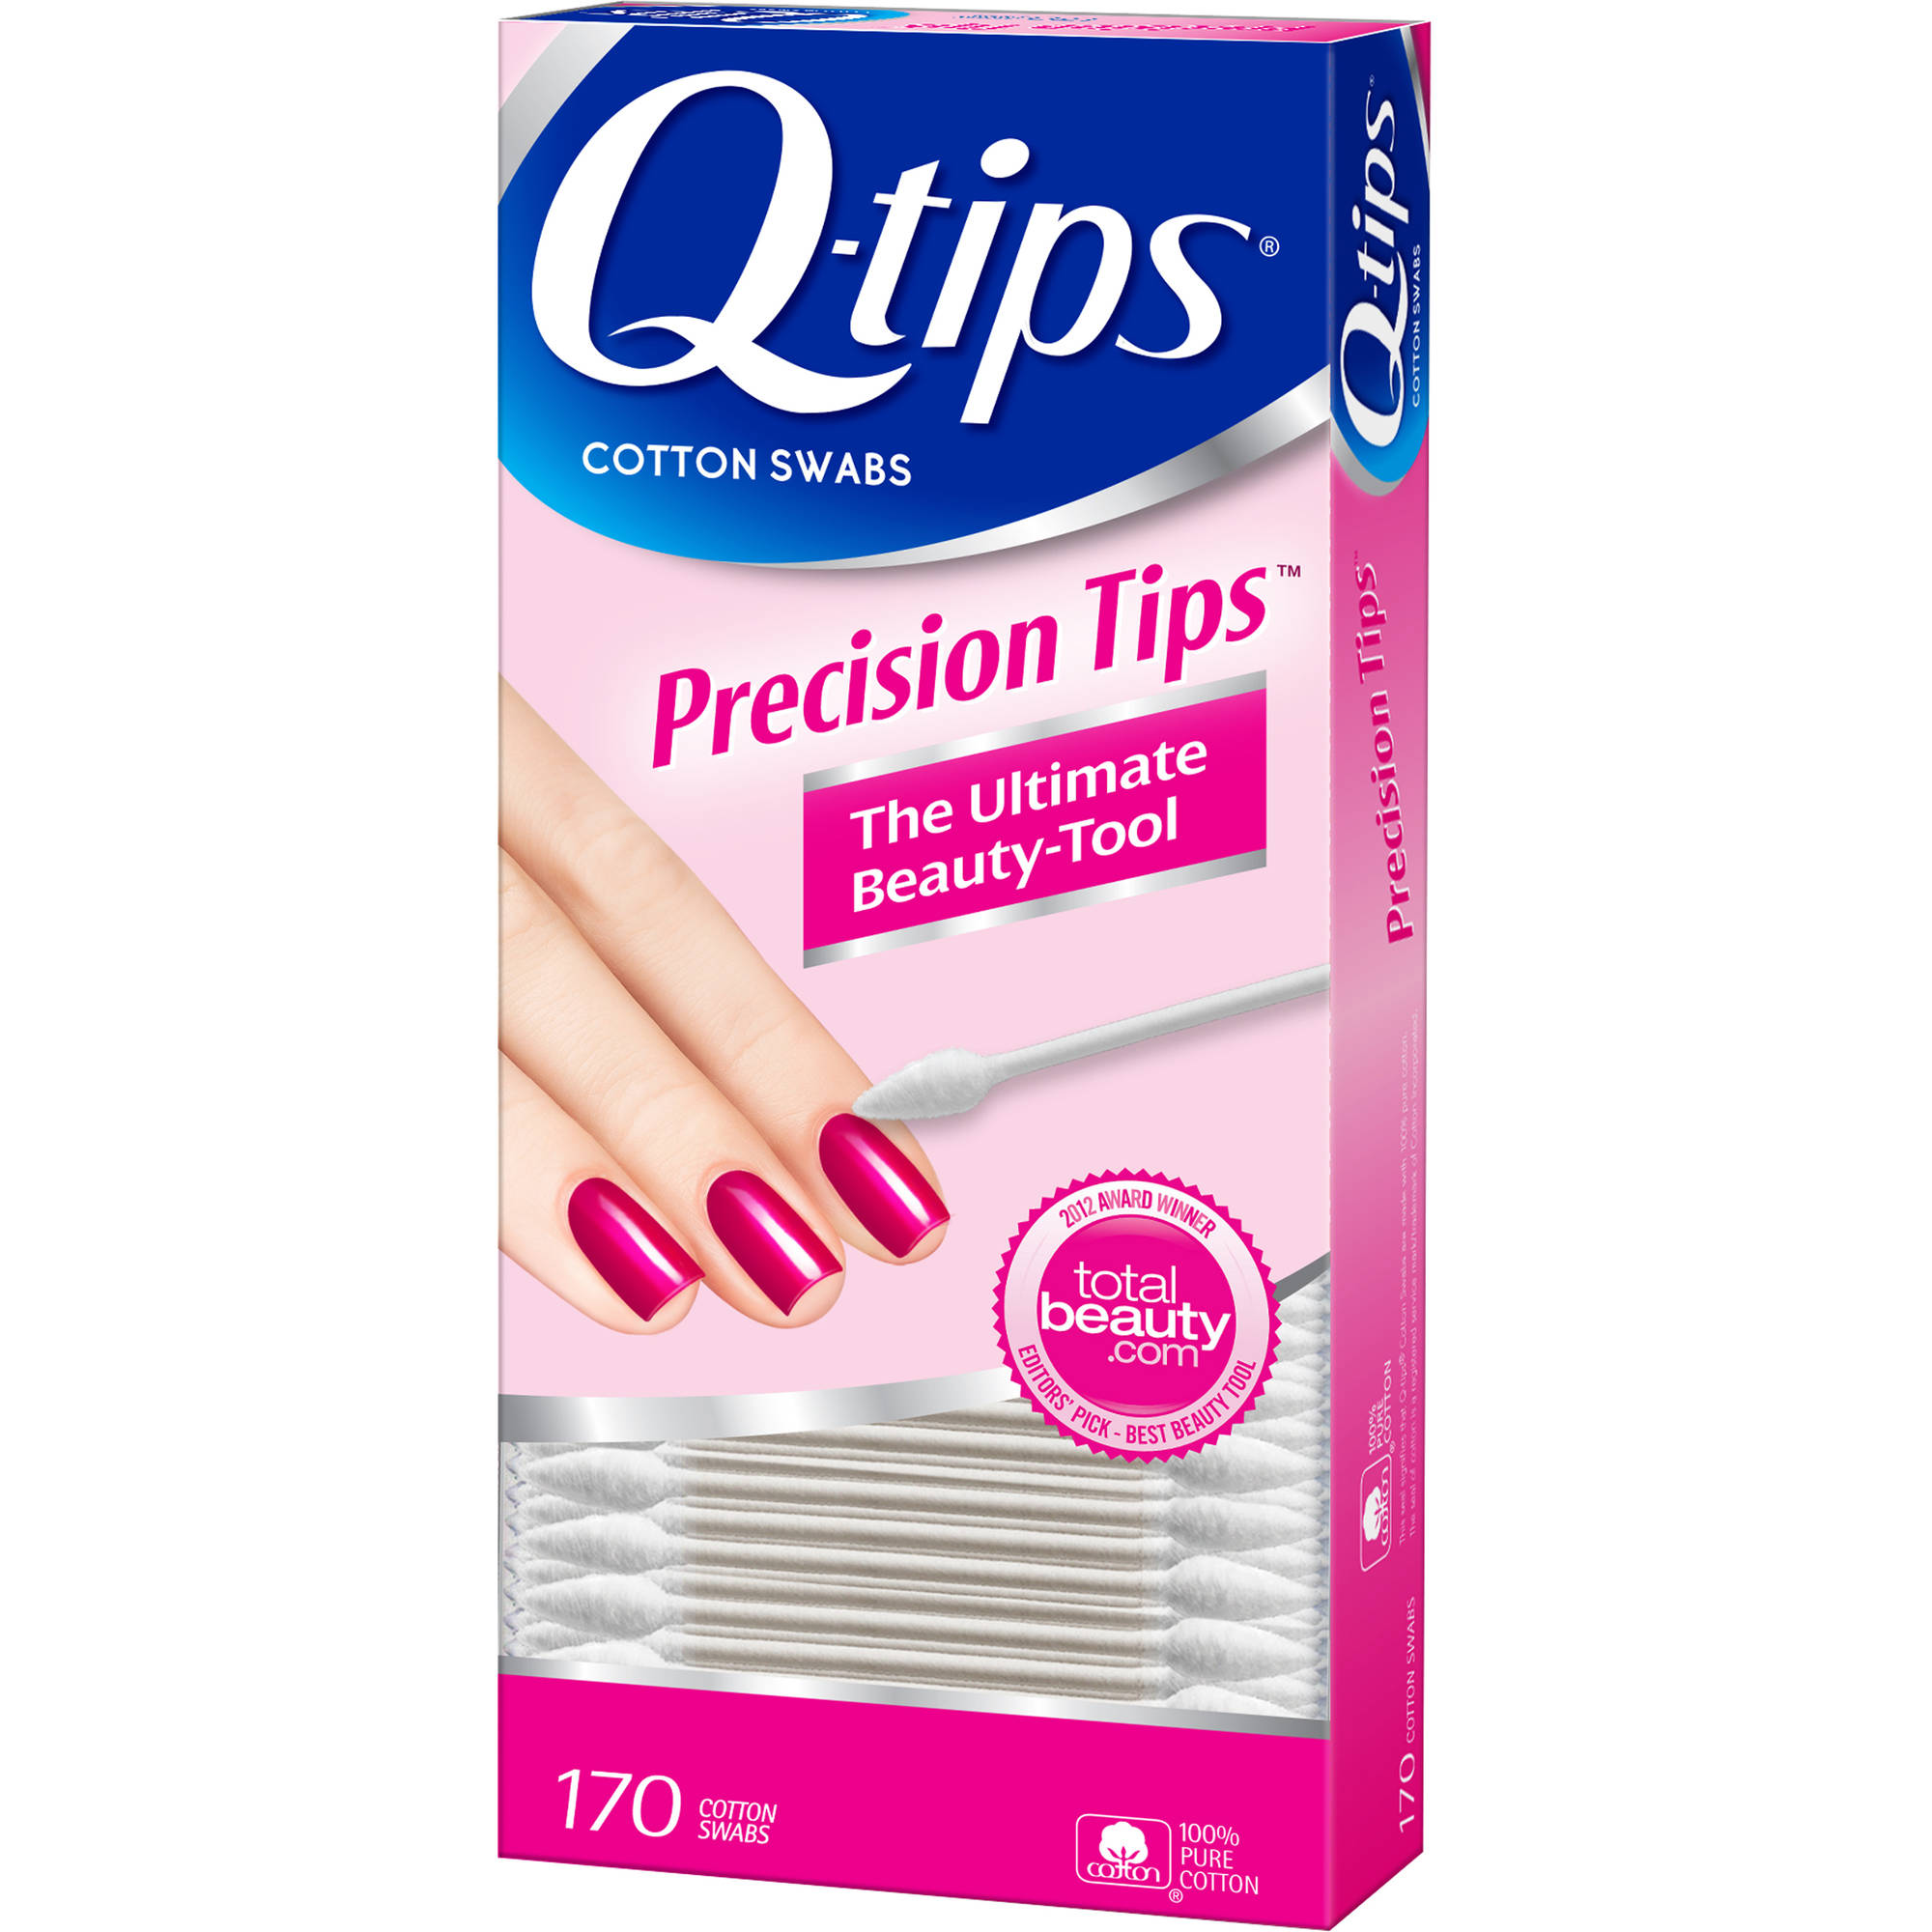 Q-tips Precision Tips Cotton Swabs, 170 count